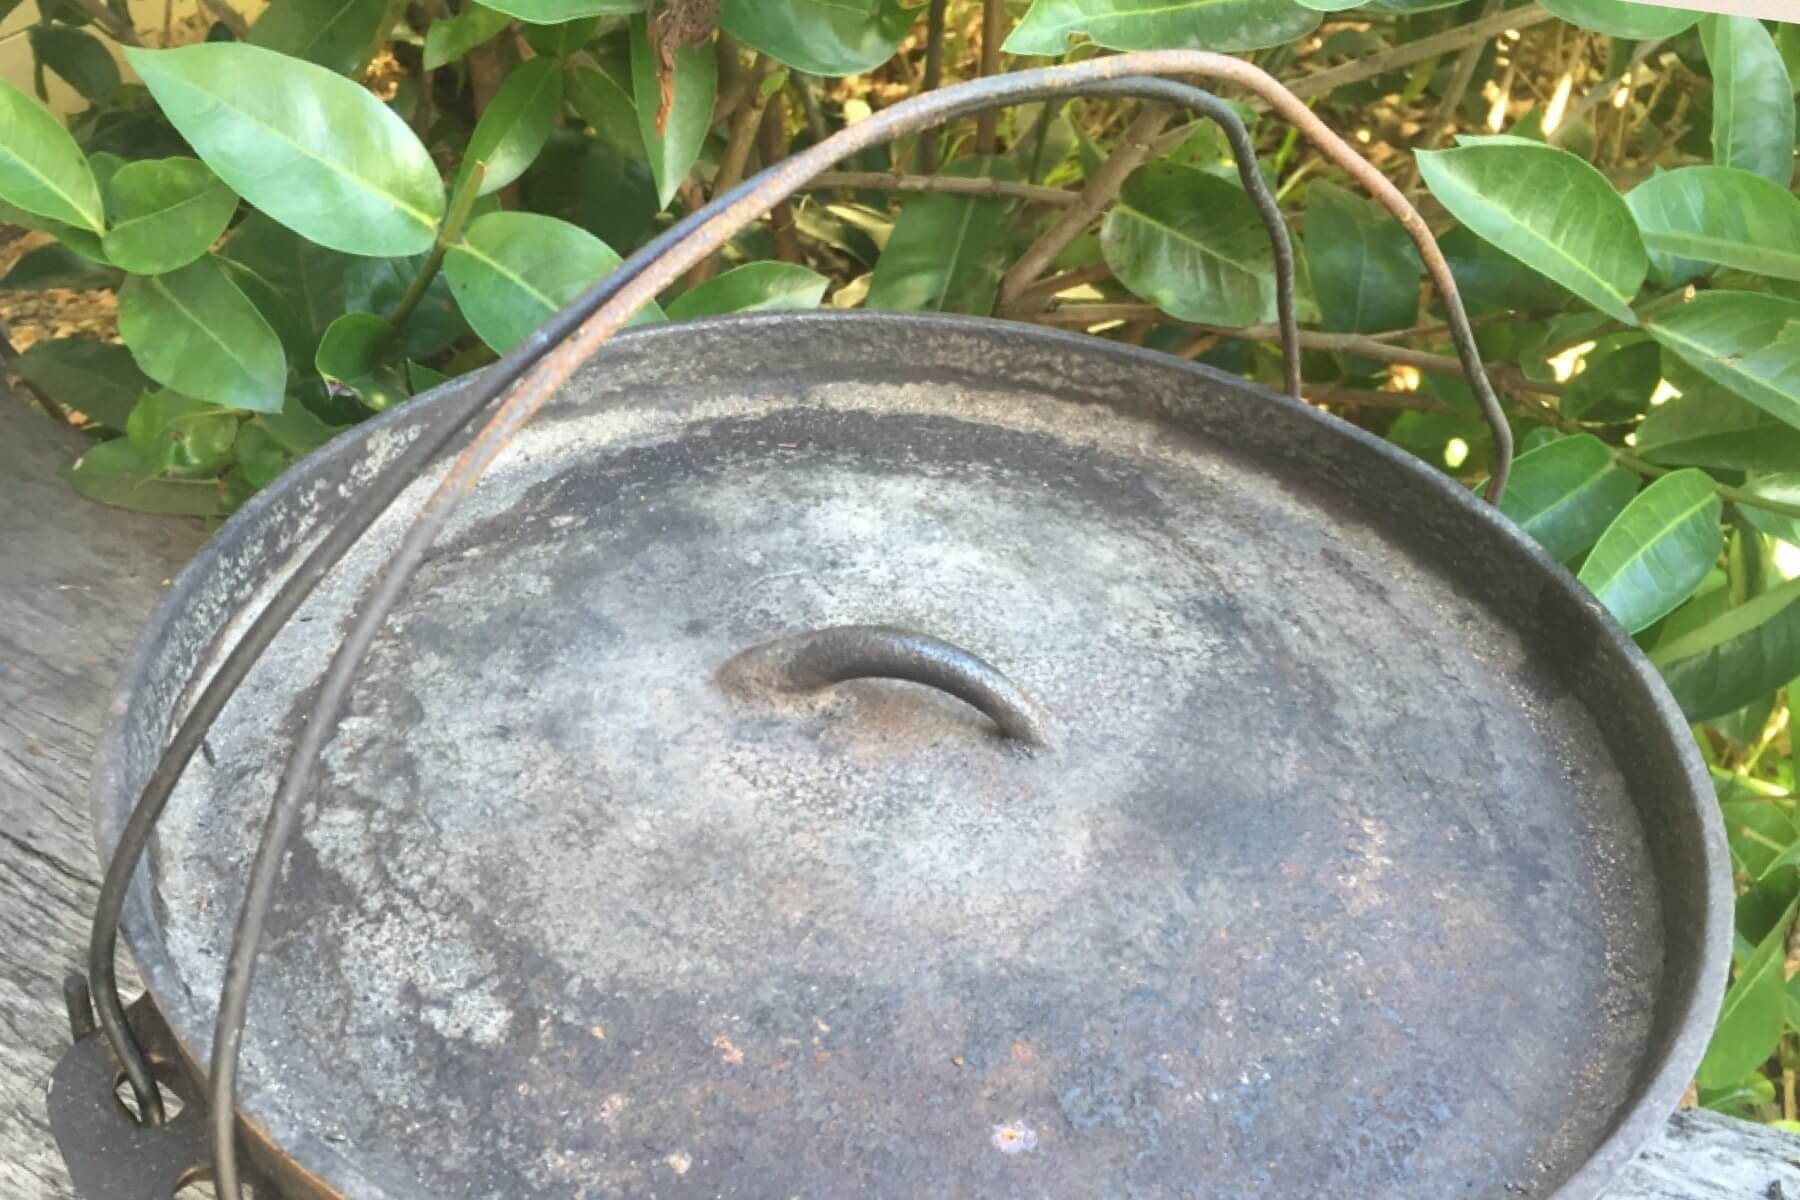 How to Identify Vintage Camp Ovens